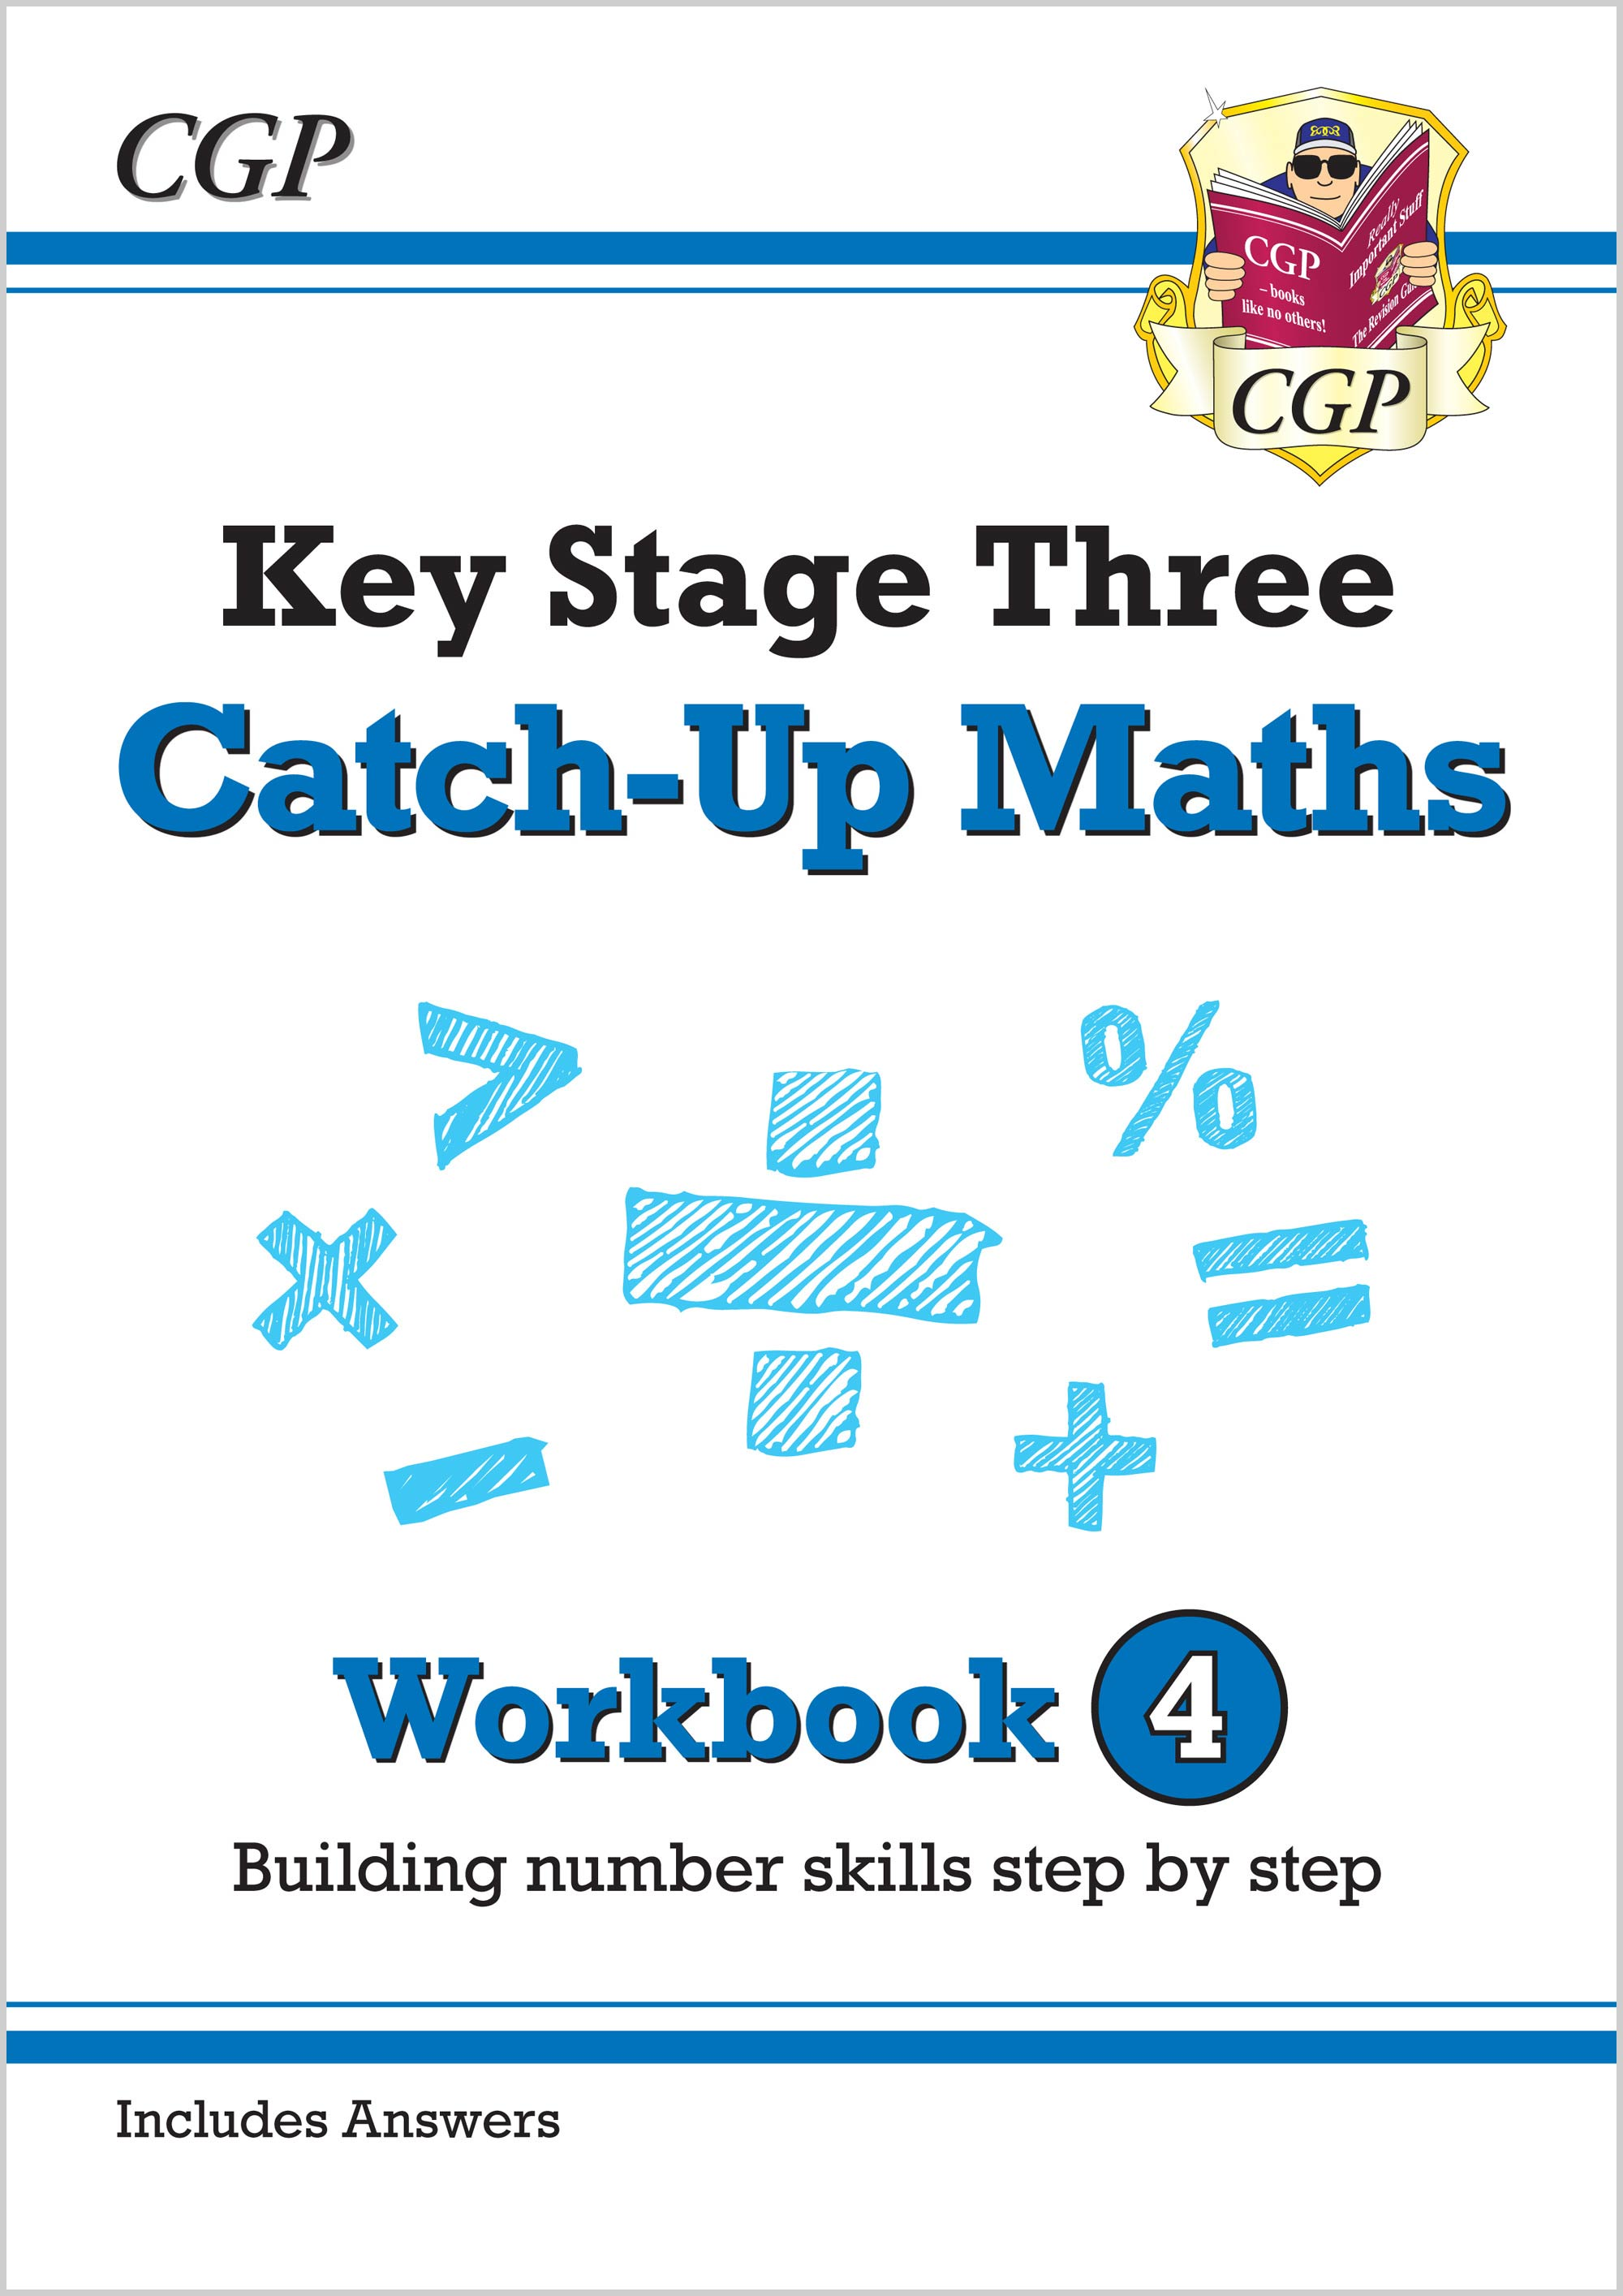 MBNW431 - New KS3 Maths Catch-Up Workbook 4 (with Answers)